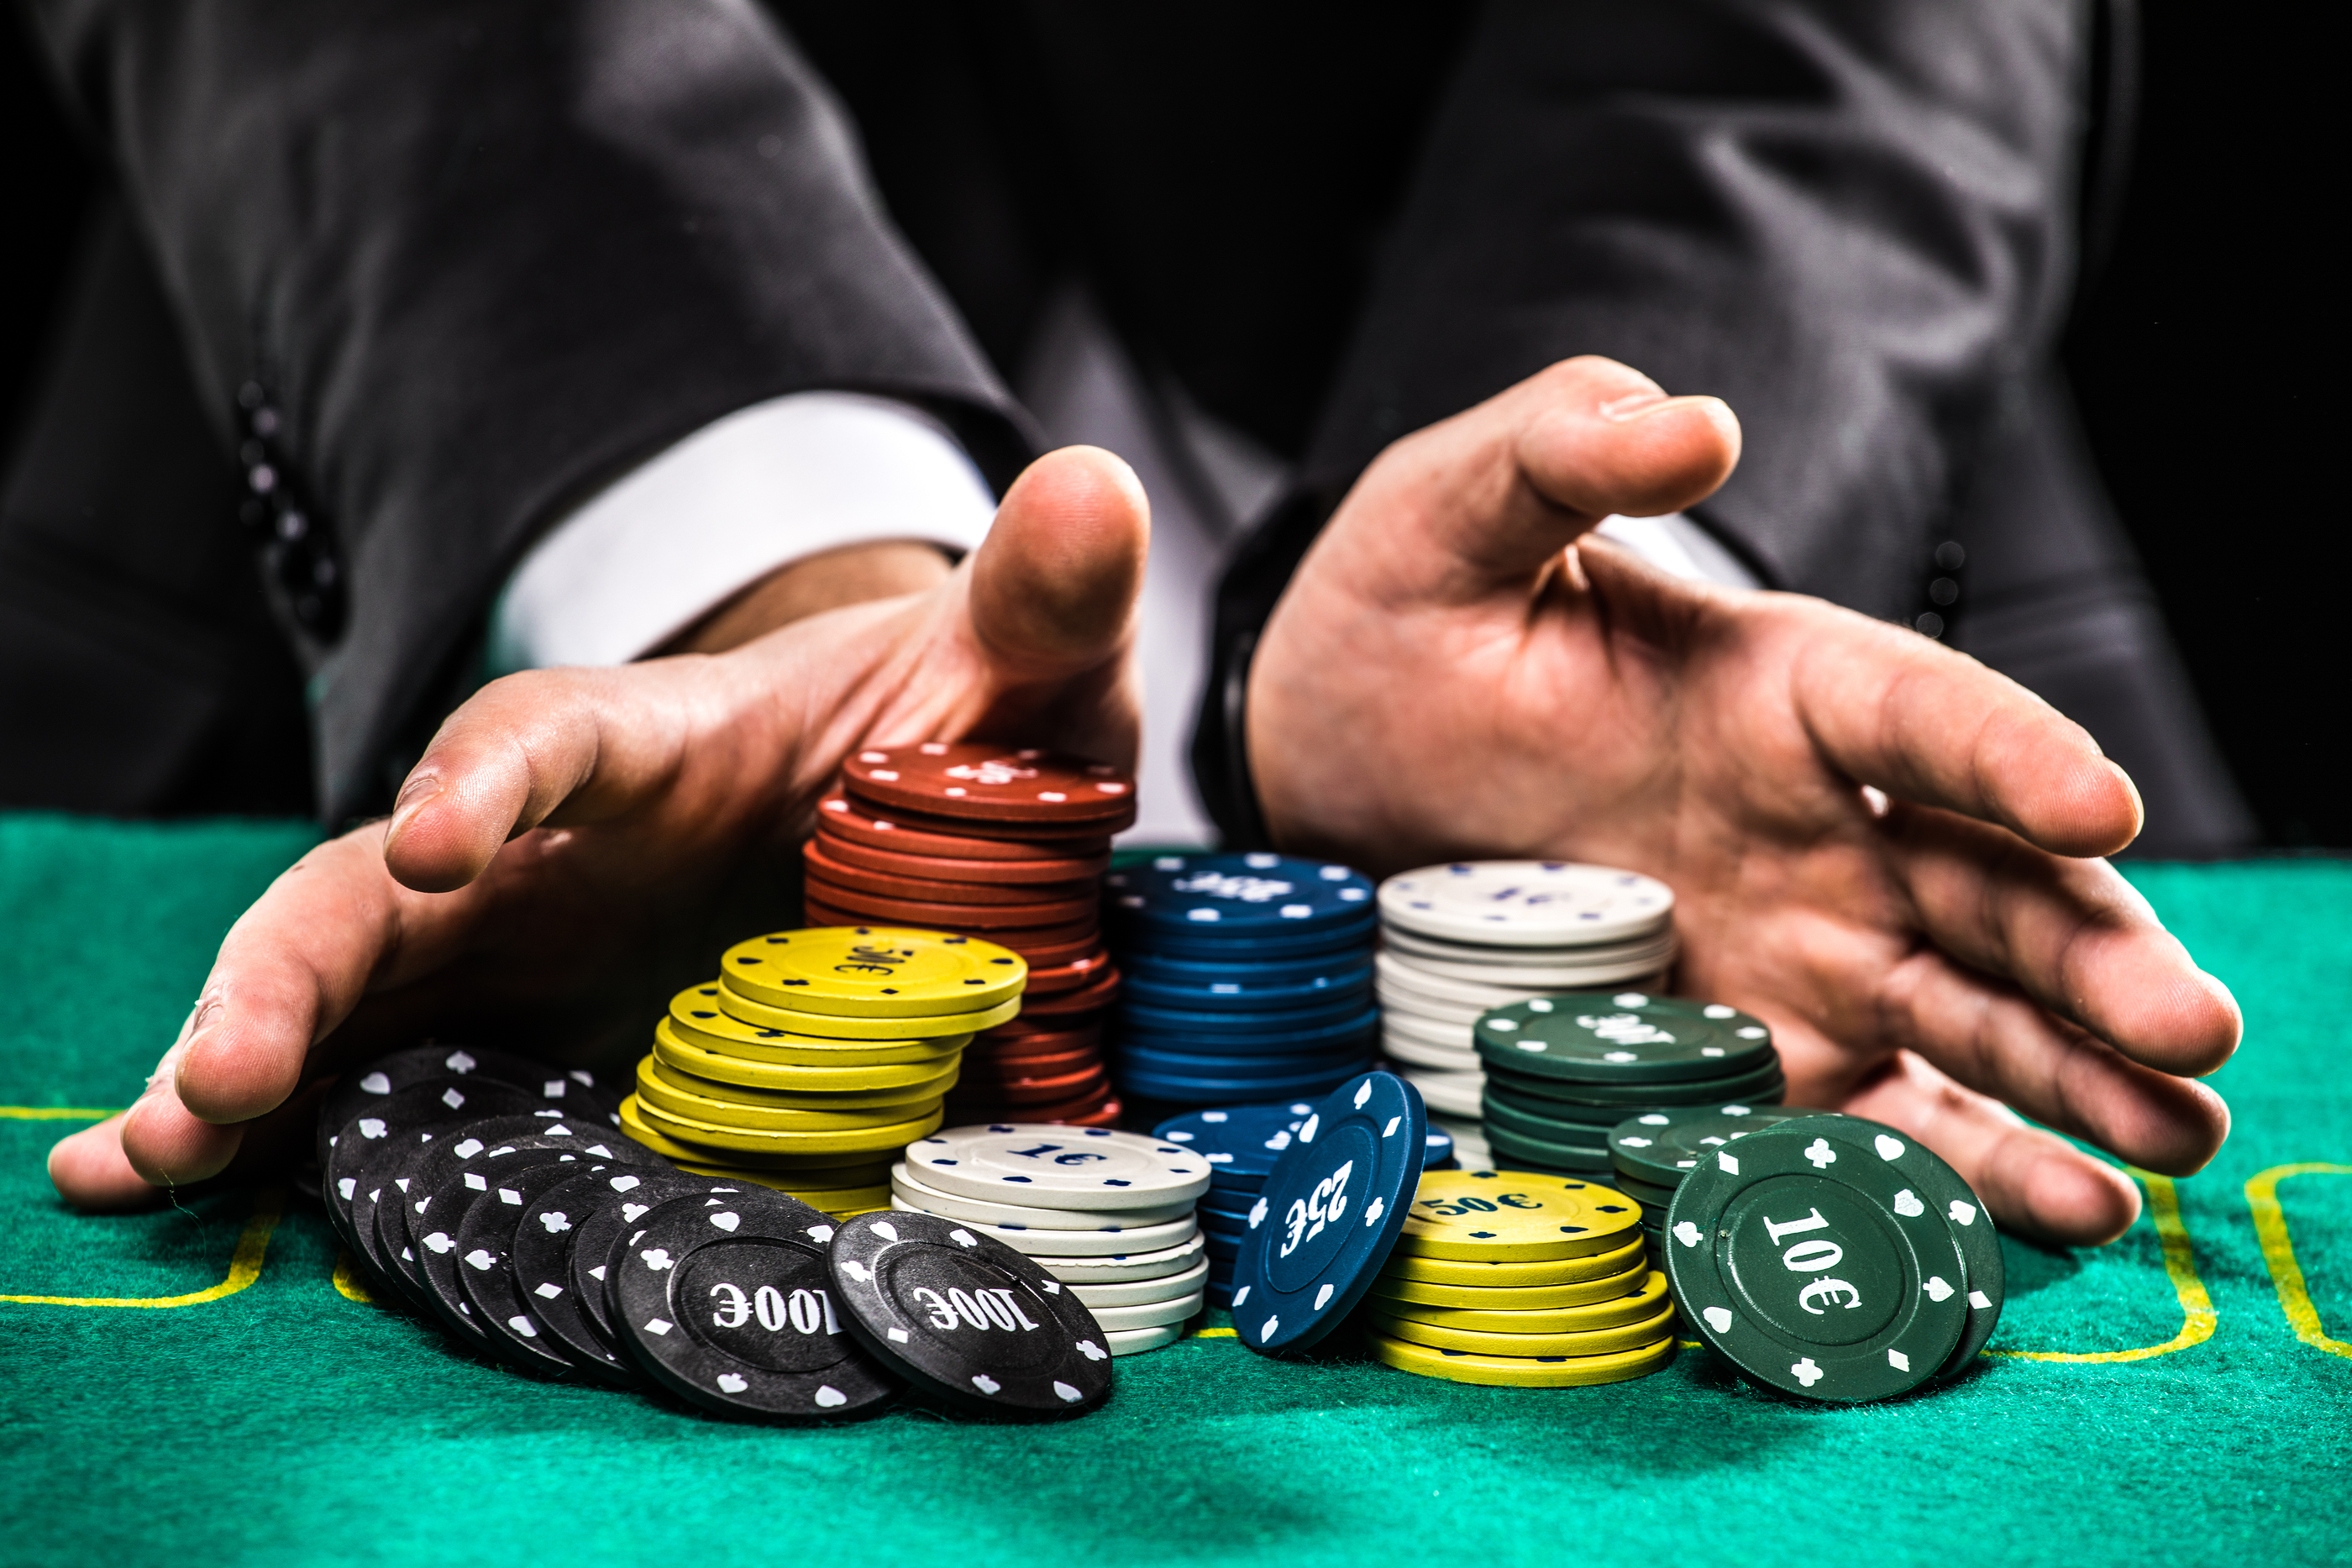 Guide to Getting The Best Online Poker Bonuses